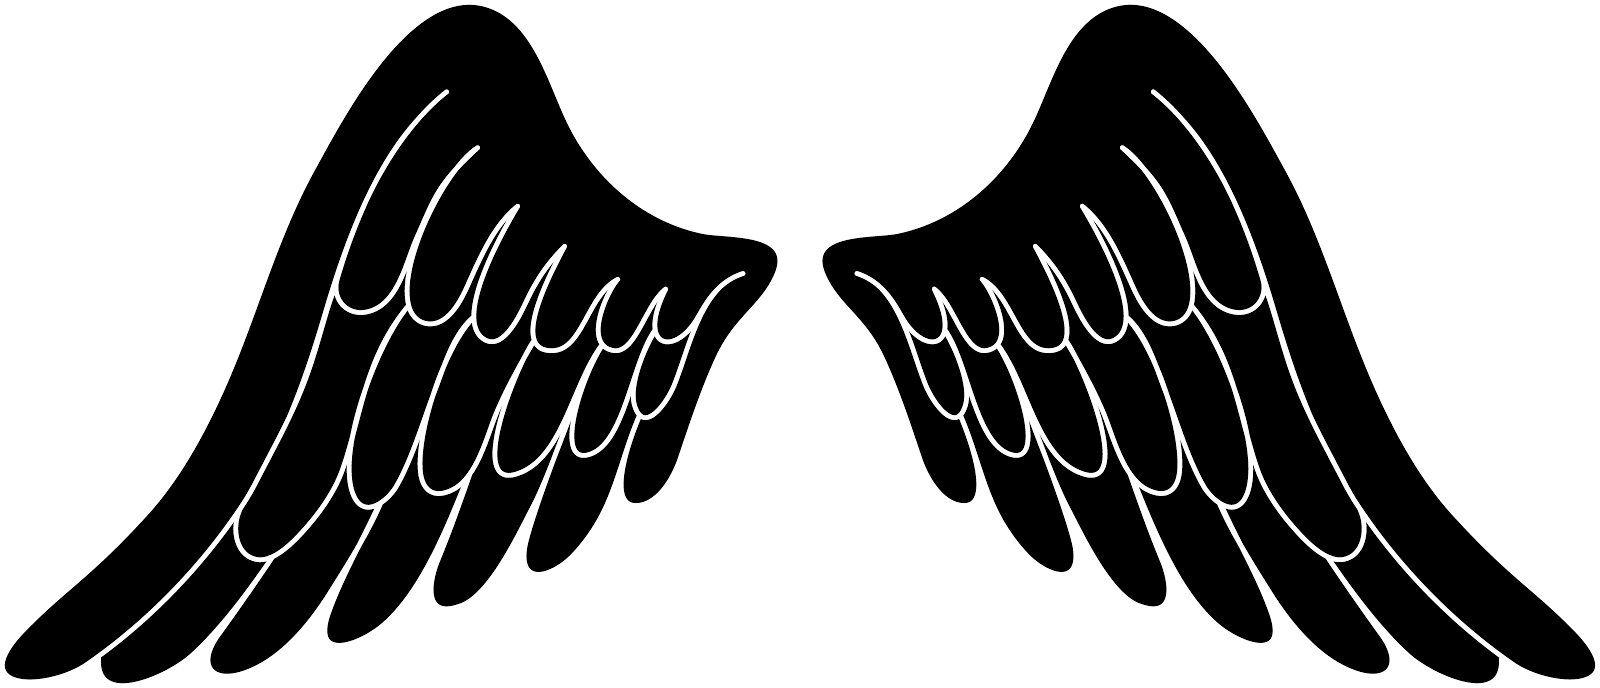 Wings clipart rock and roll Clipart Angel Black collection clipart